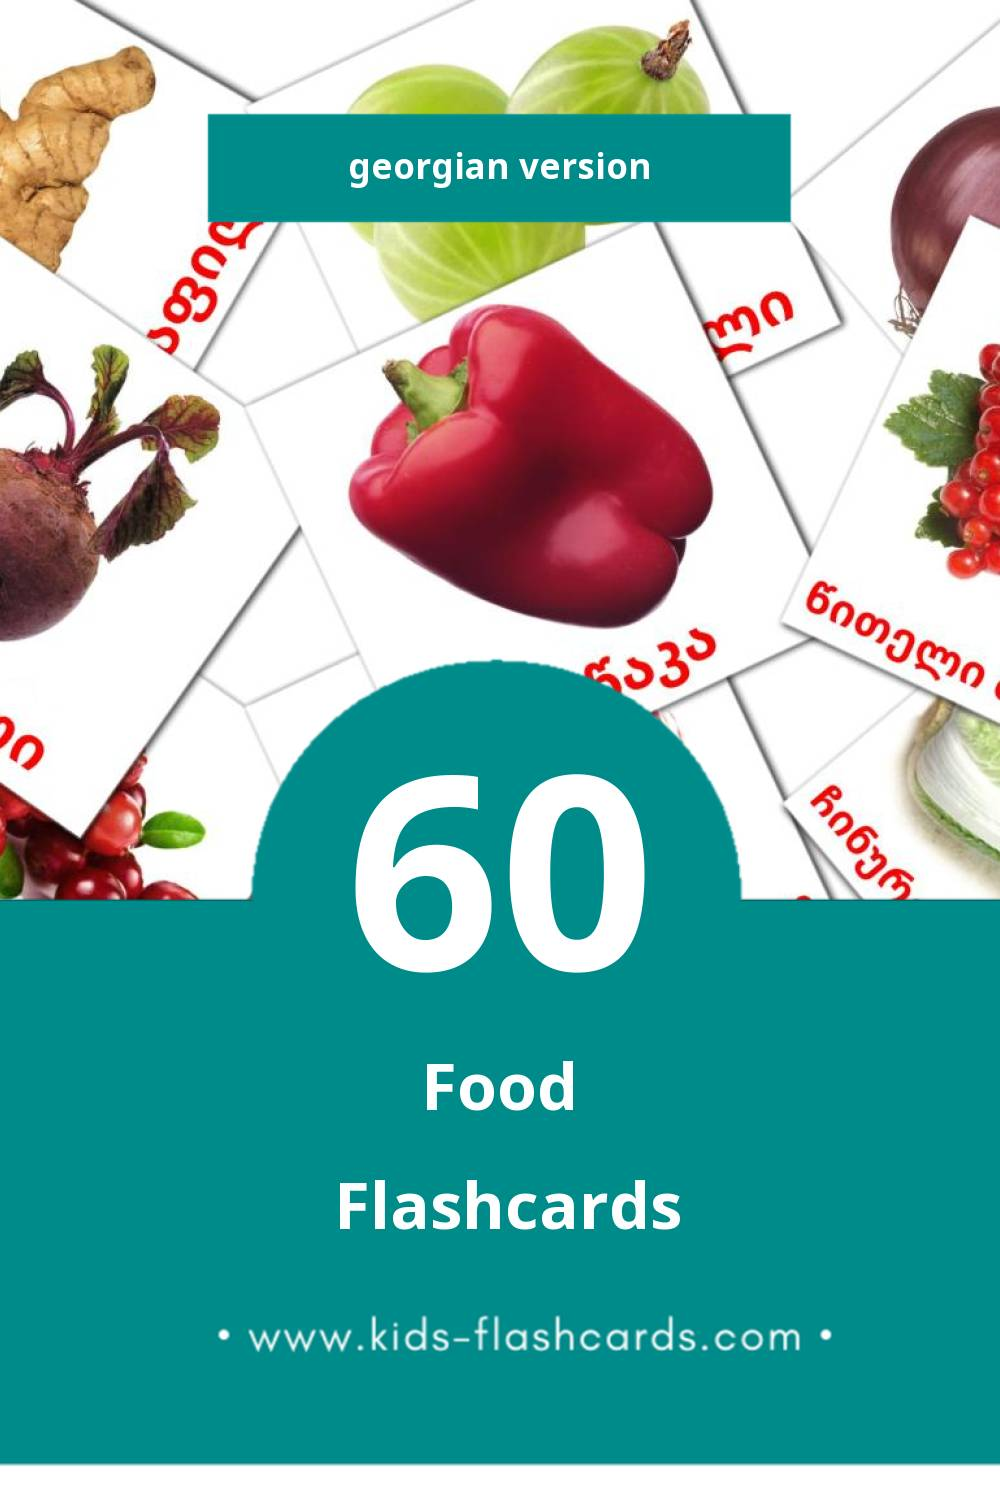 Visual საკვები Flashcards for Toddlers (49 cards in Georgian)